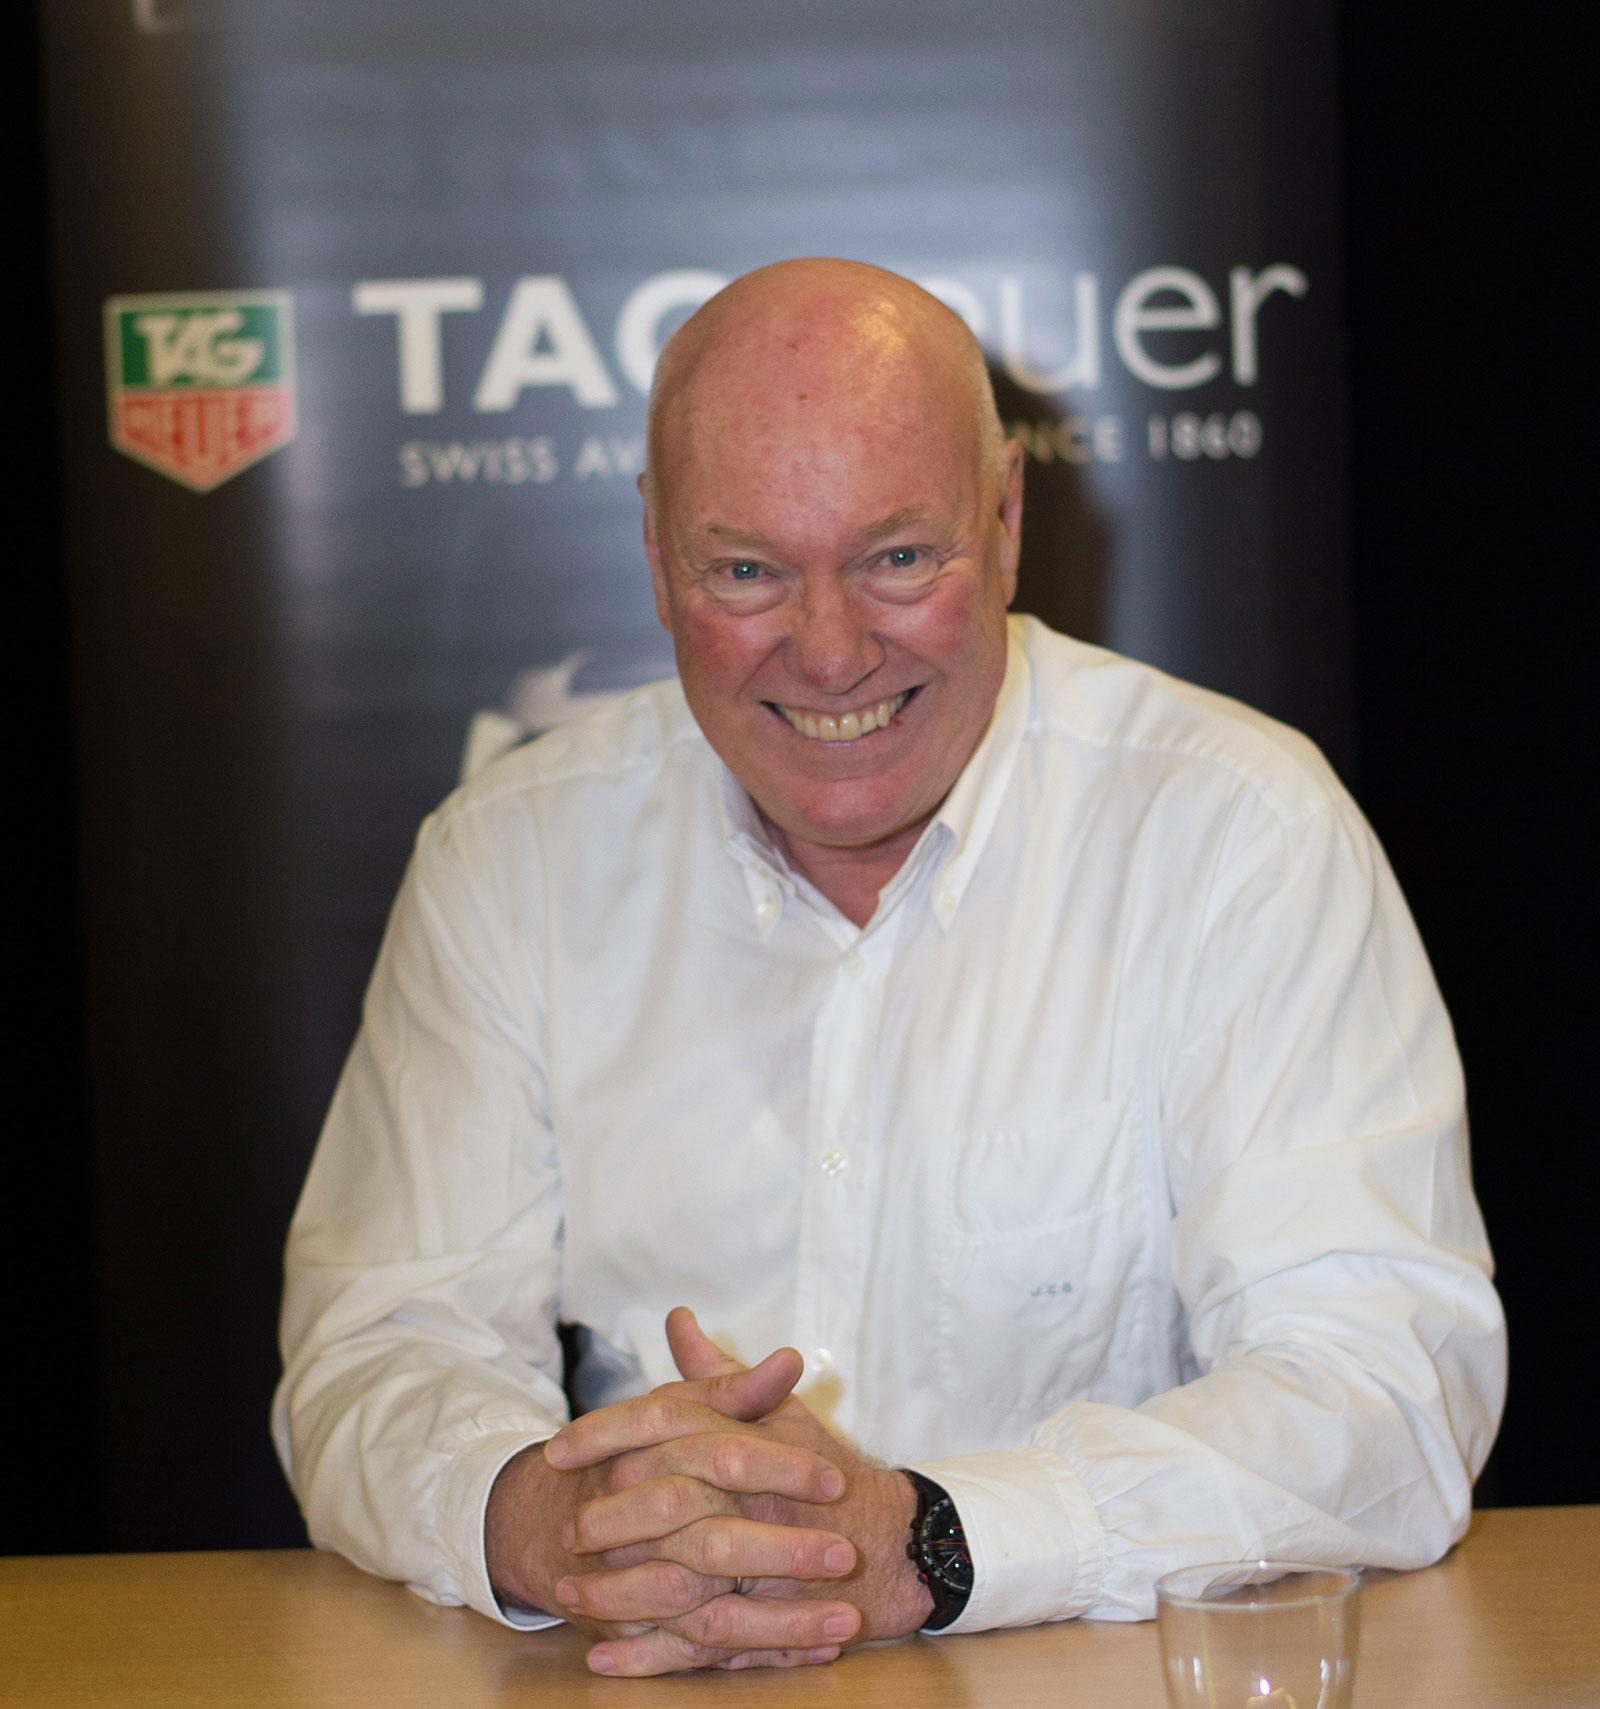 1811dc8de992 Interview: Jean-Claude Biver on How He Turned Around TAG Heuer | SJX ...